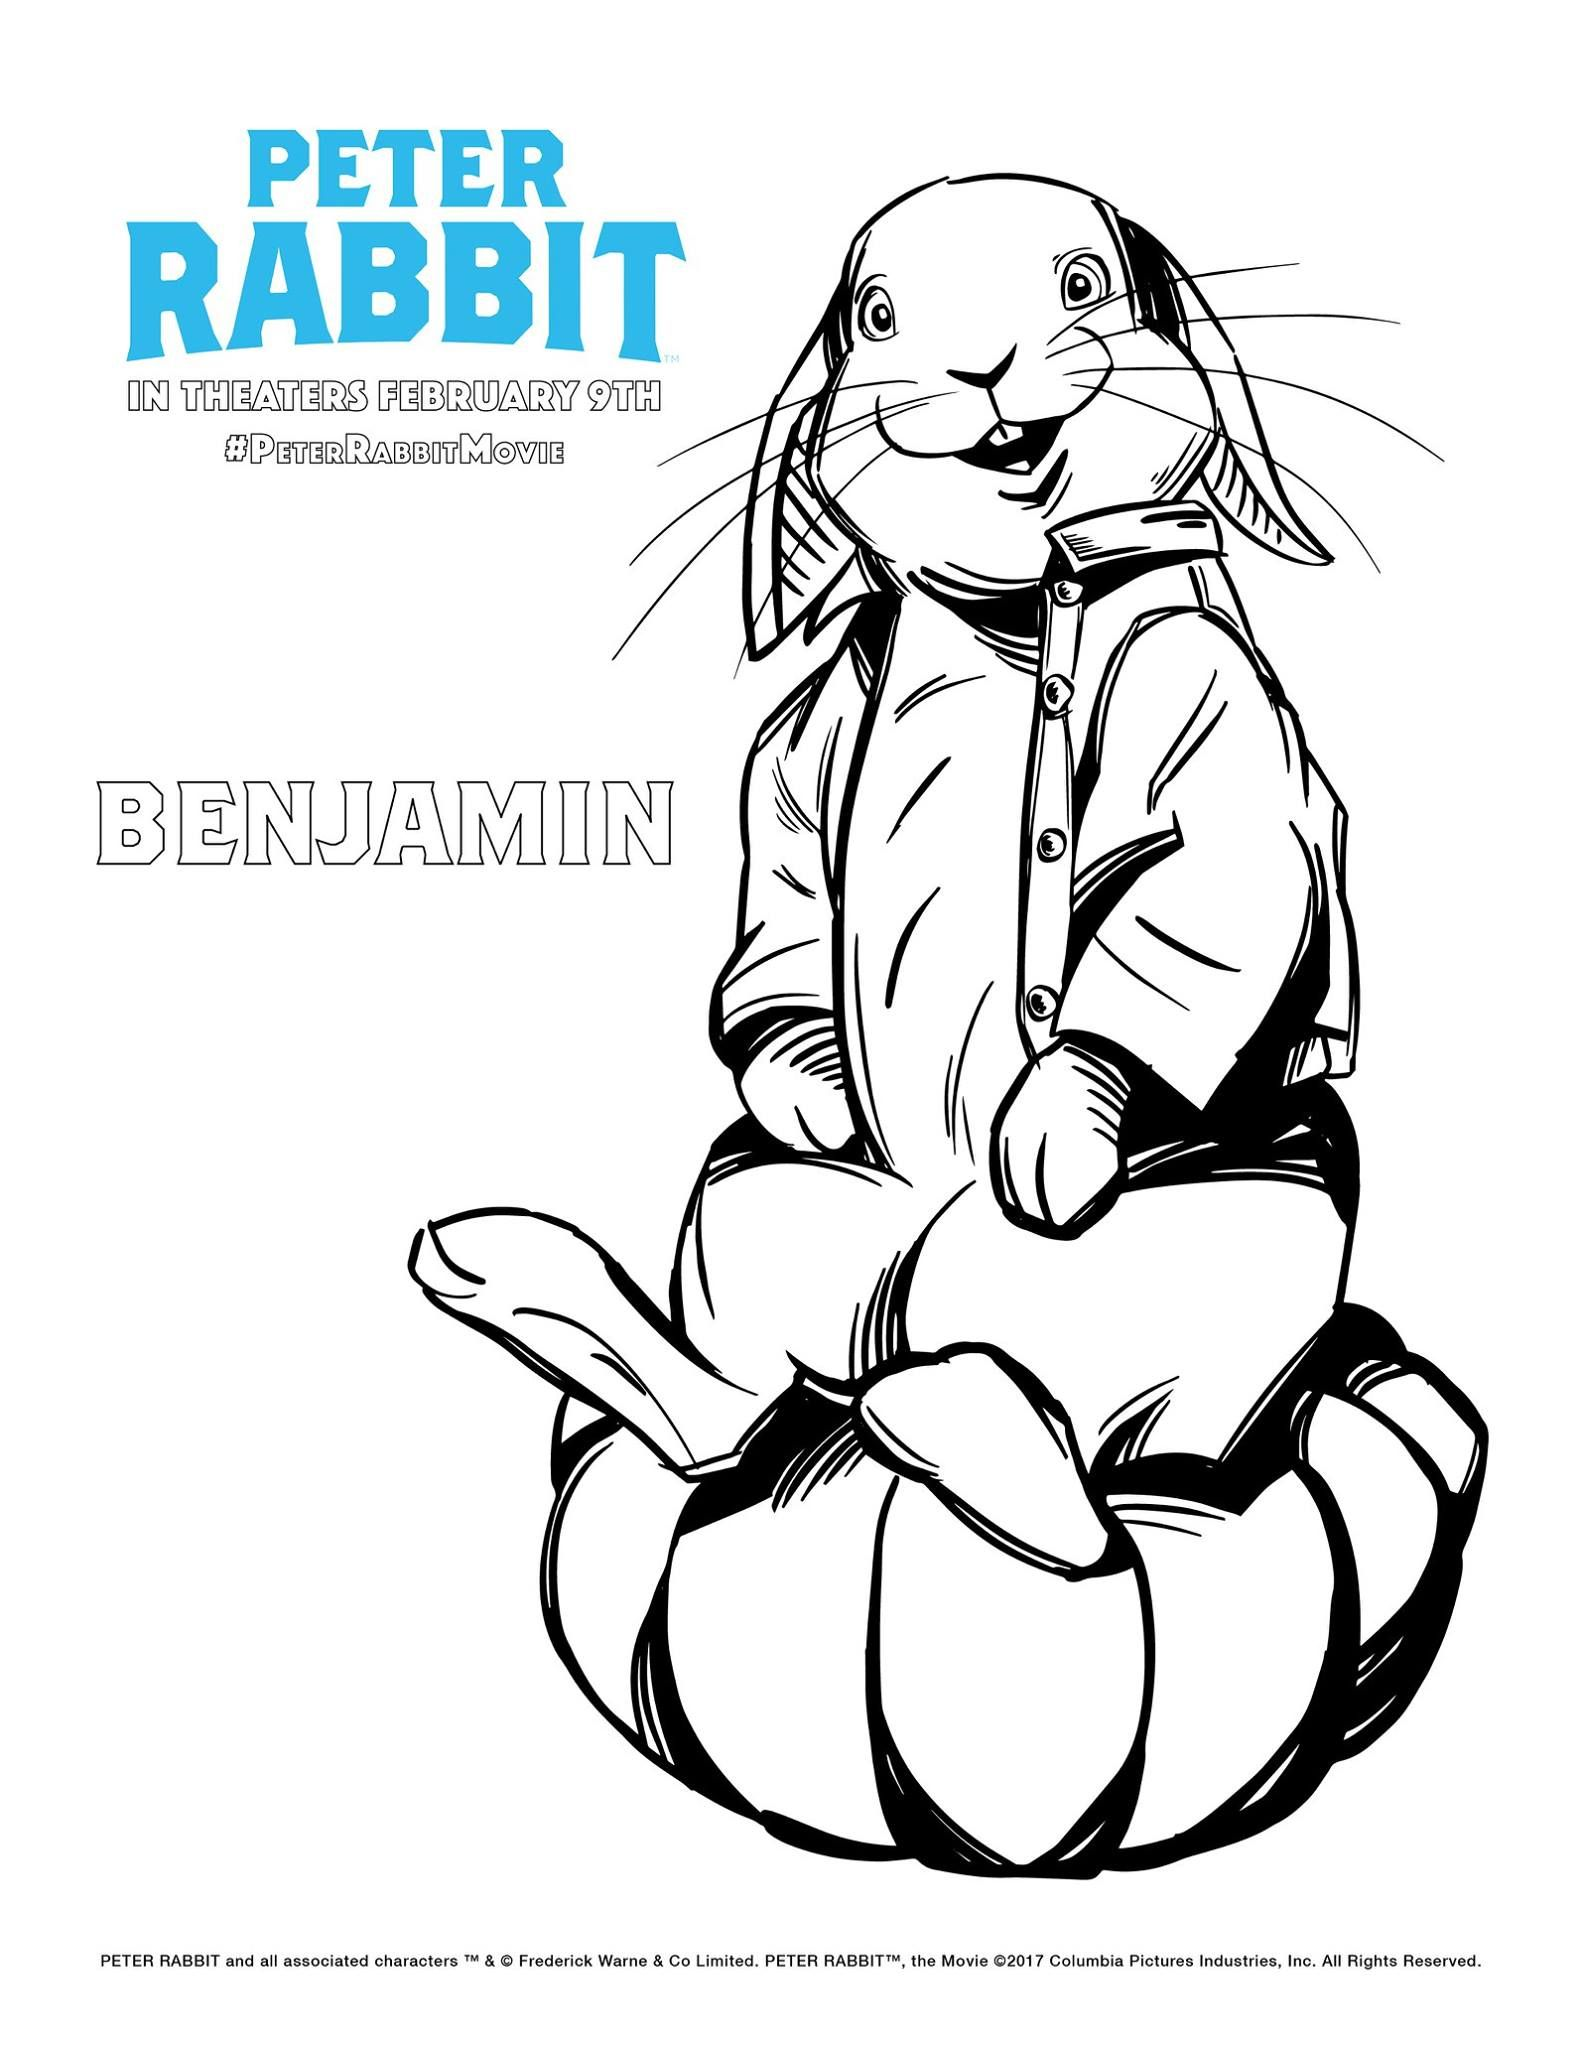 Benjamin Bunny Colouring Peter Rabbit Movie Peter Rabbit Coloring Pages